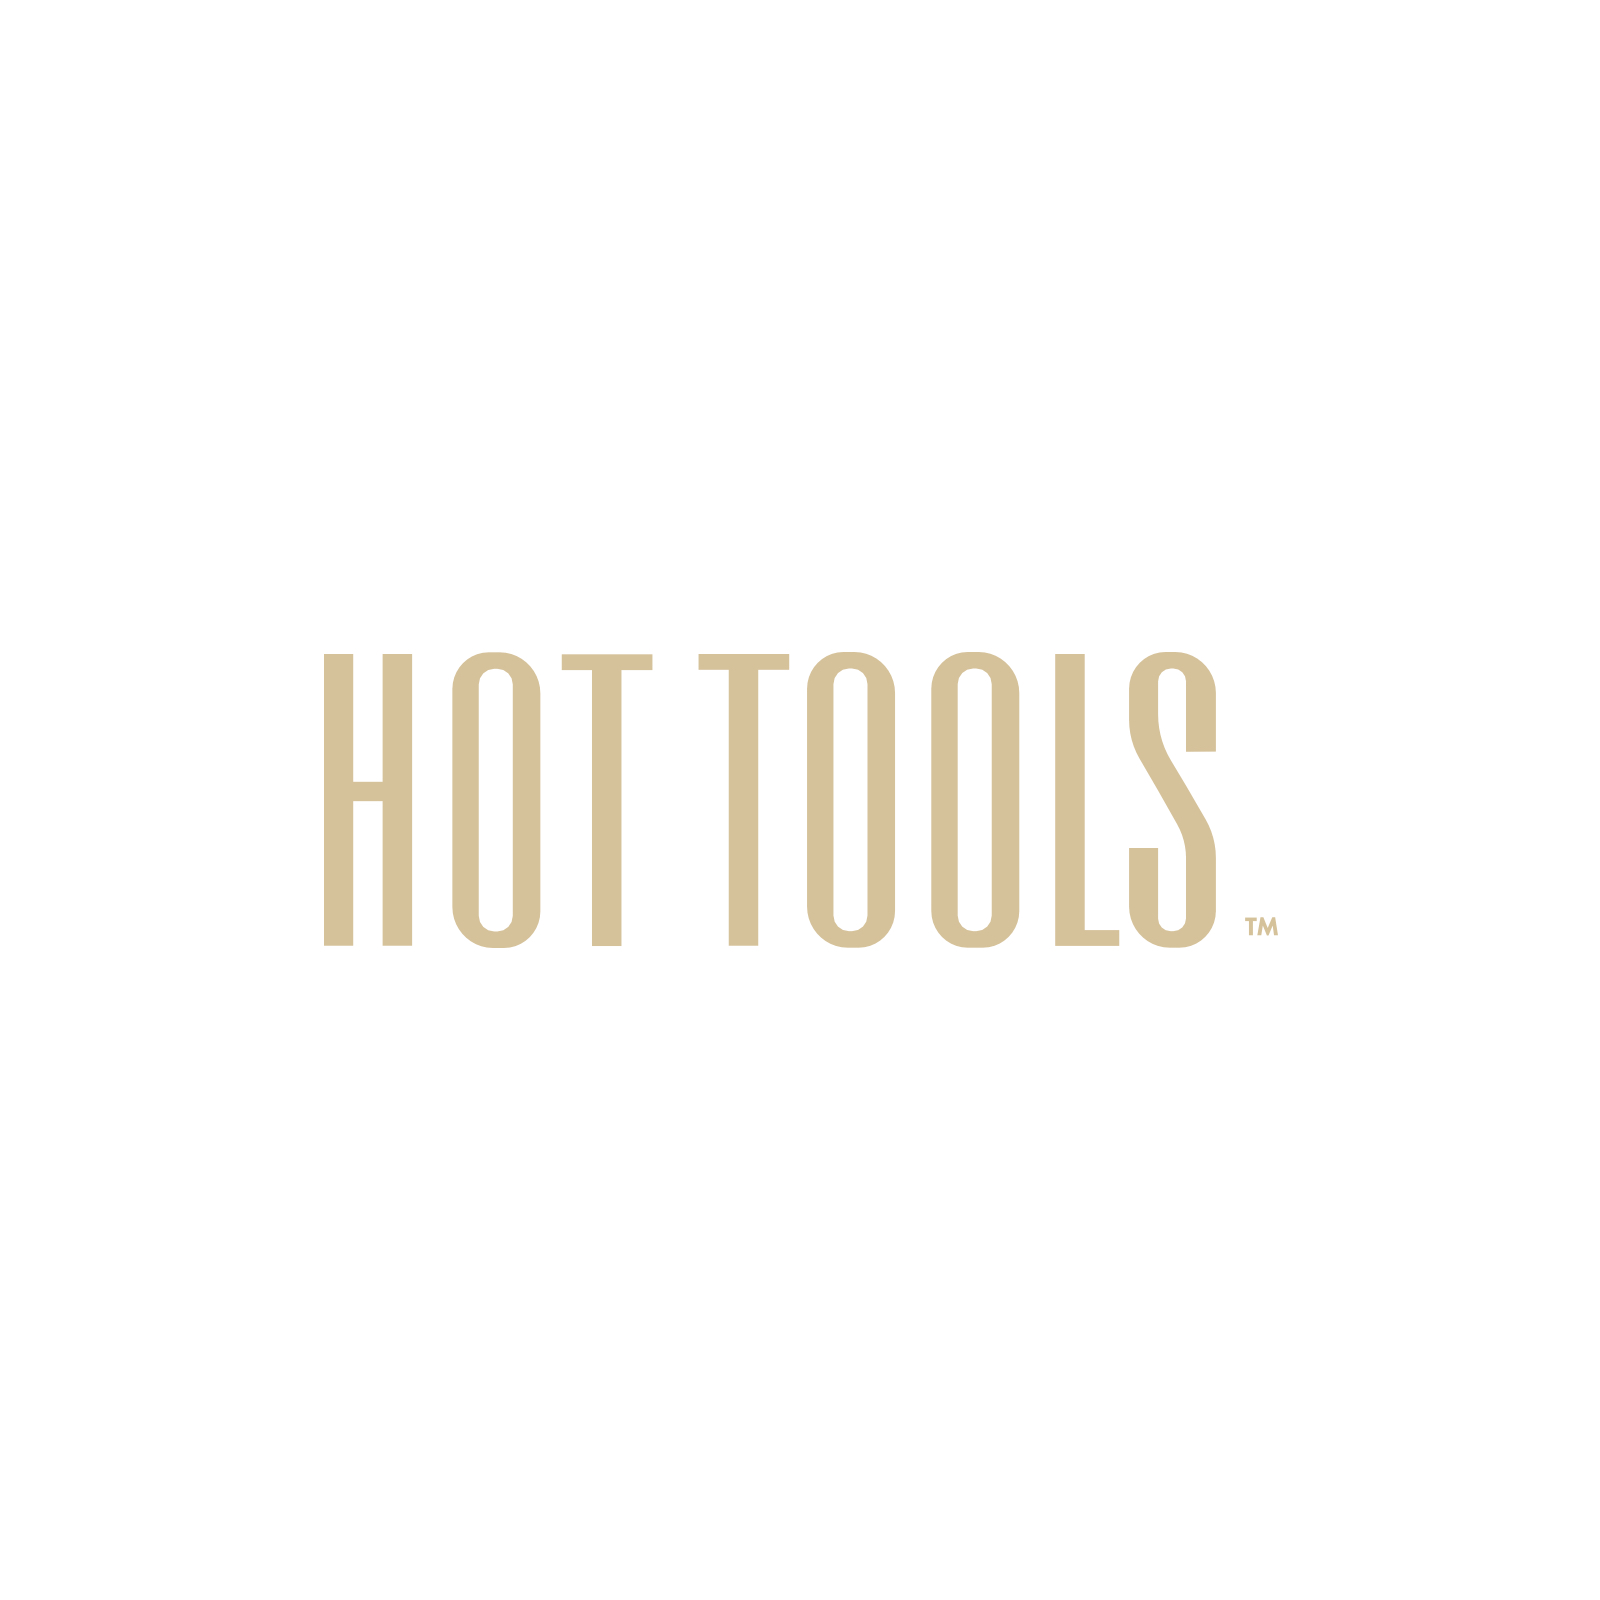 HOT TOOLS Signature Series Professional 1875W Ionic AC Motor Hair Dryer product image